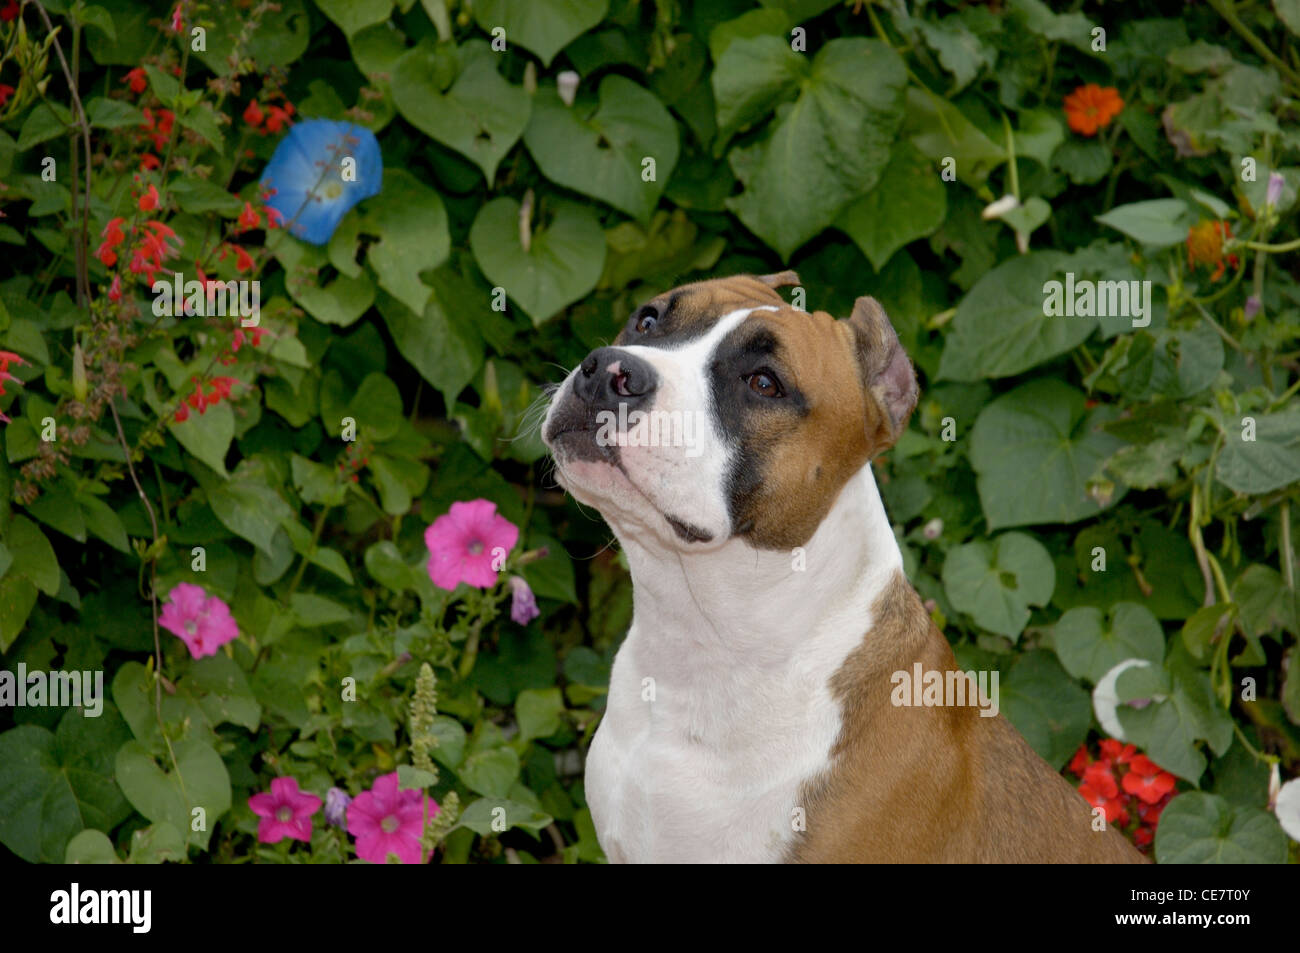 American Staffordshire Terrier-Head shot - Stock Image